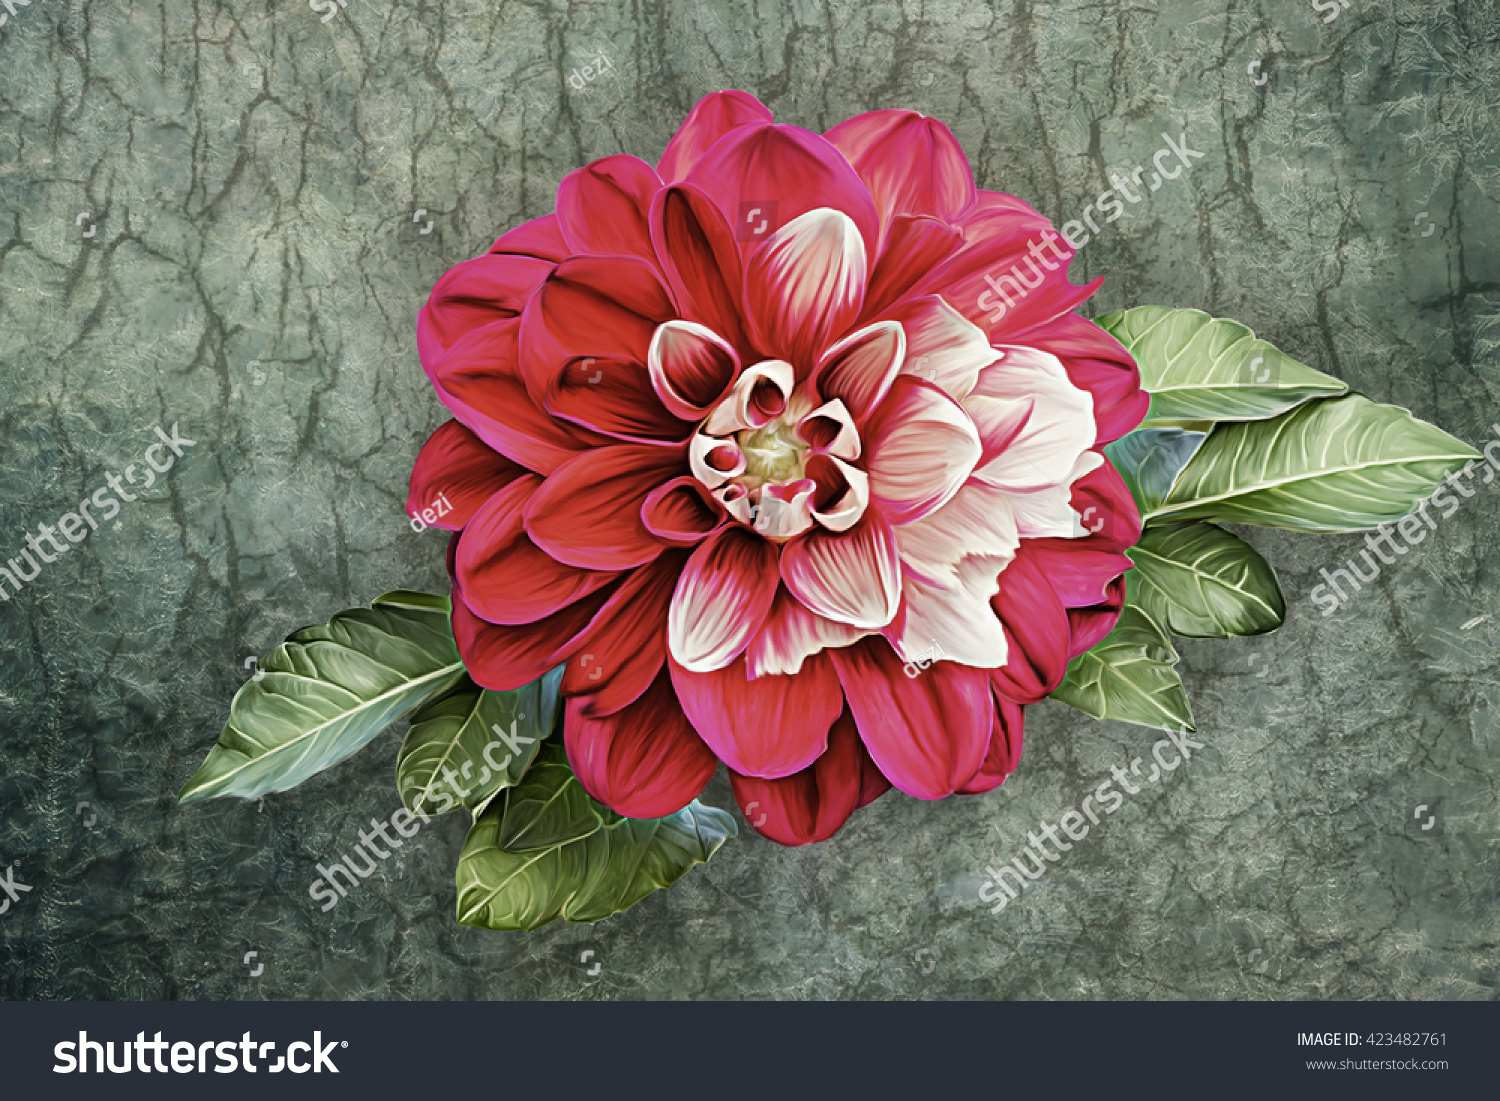 Drawing Oil Painting Dahlia Flower On Stock Illustration 423482761